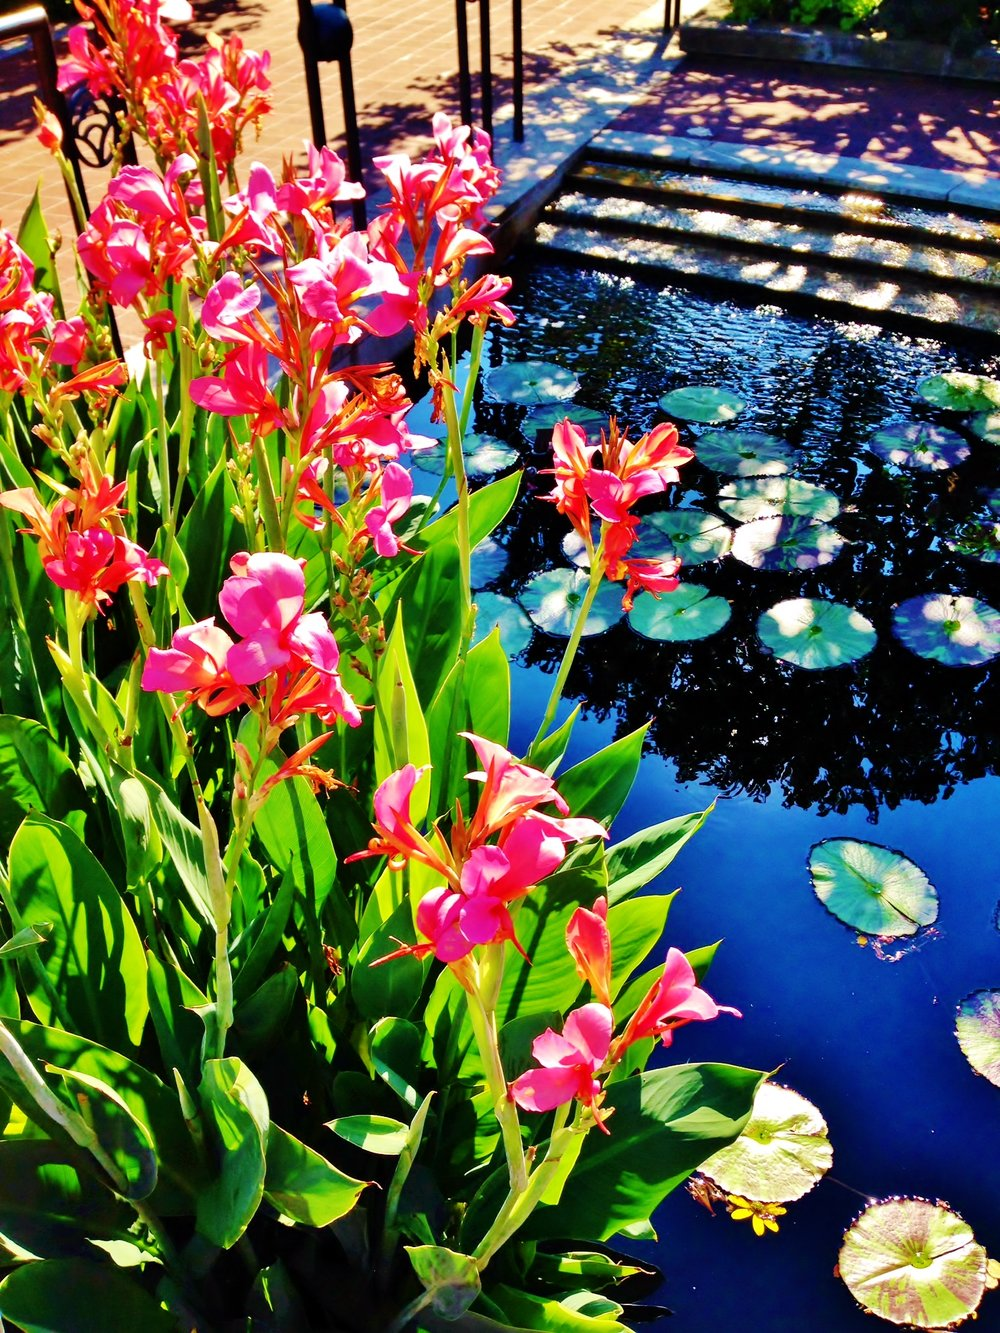 CBG Pink Flowers and Lilly Pond